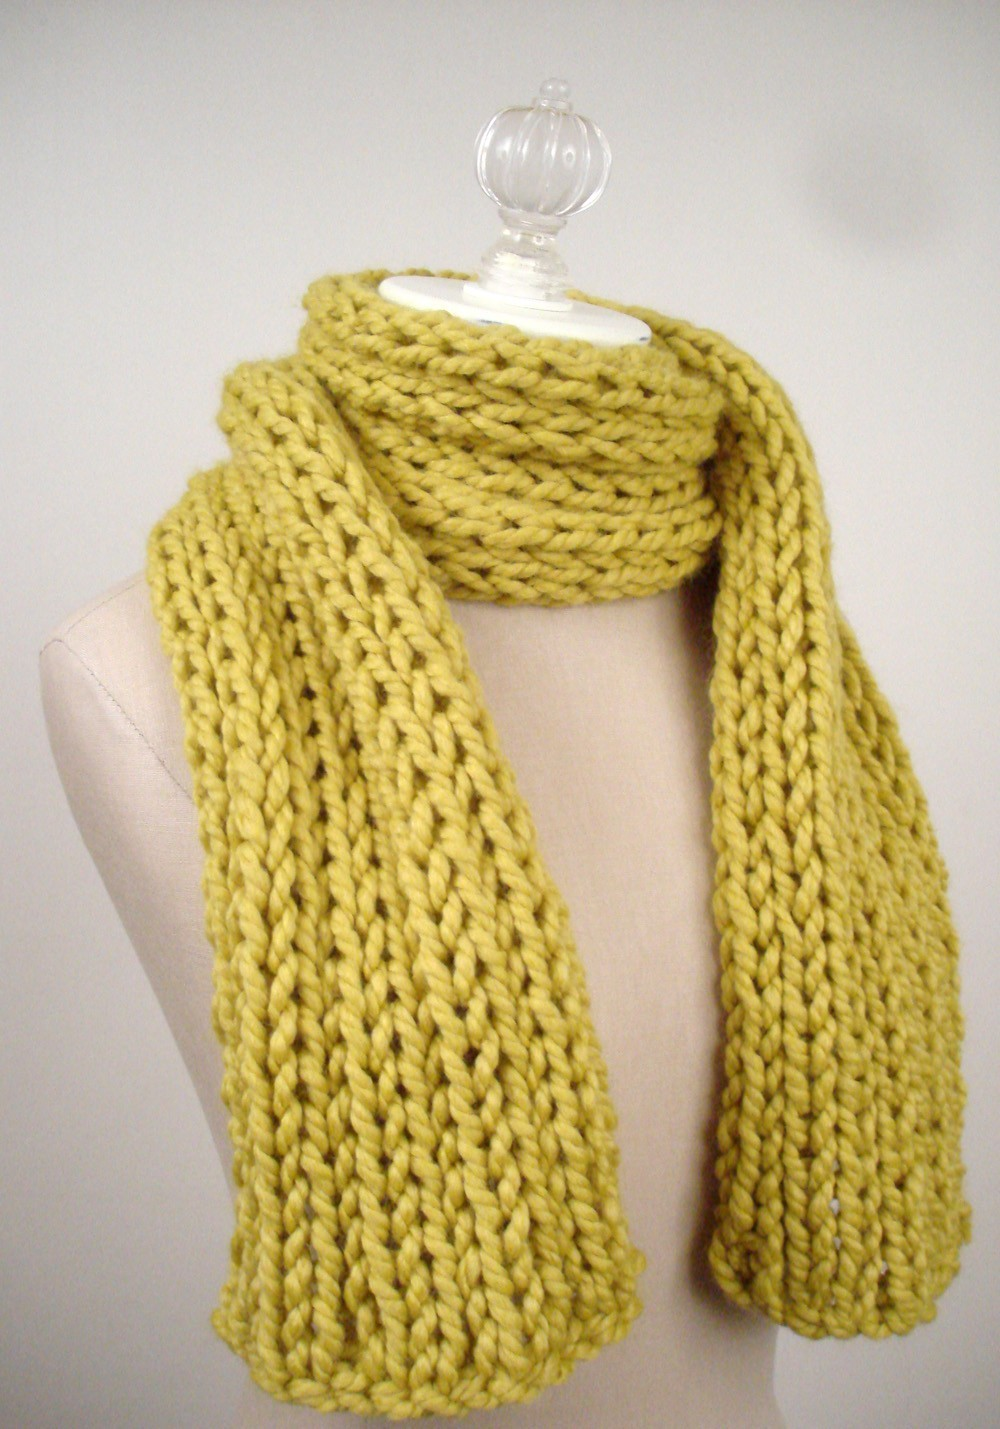 Knitting Patterns Scarf Free : Scarf Knitting Patterns A Knitting Blog